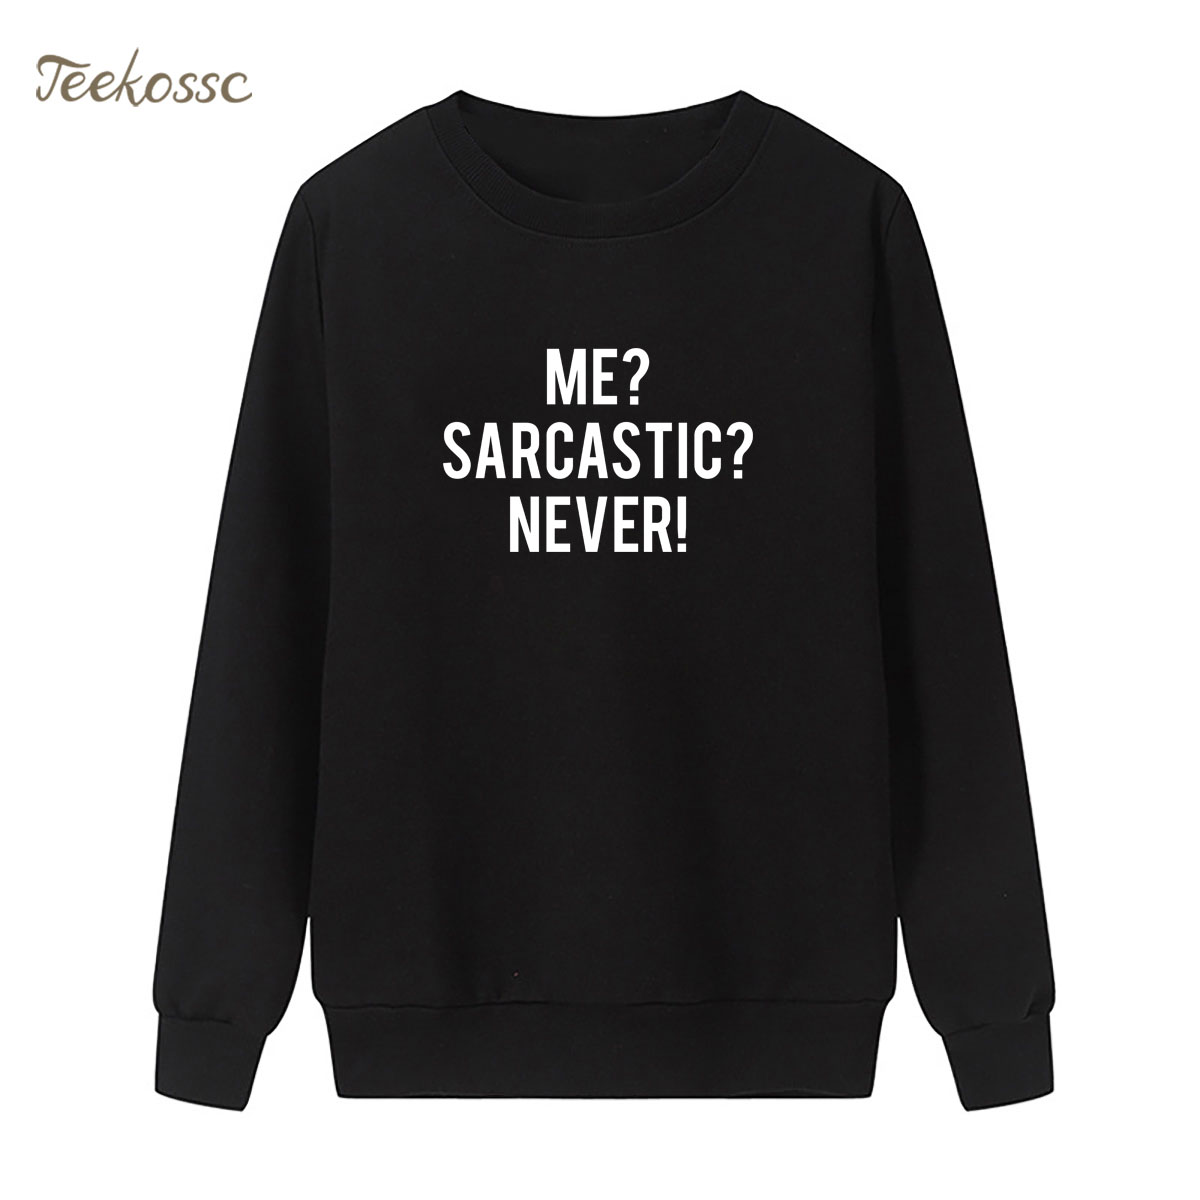 New Arrival Letters Print Sweatshirt Black White Hoodie 2018 Brand Winter Autumn Women Lasdies Pullover Loose Fleece Sportswear